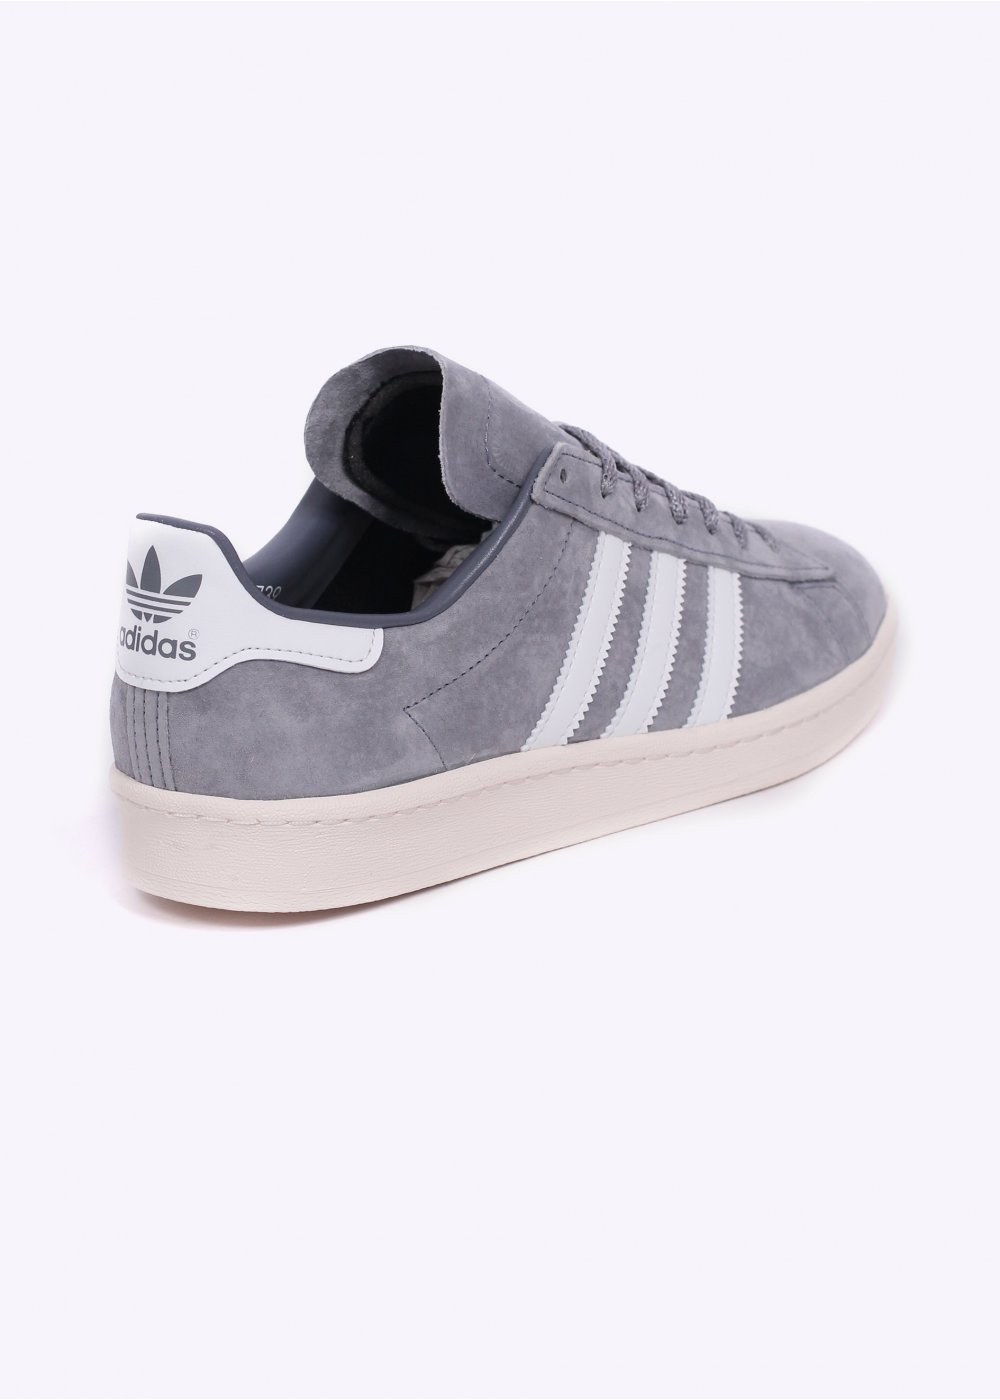 adidas Originals adidas Originals Gazelle Trainers In Navy BB5478